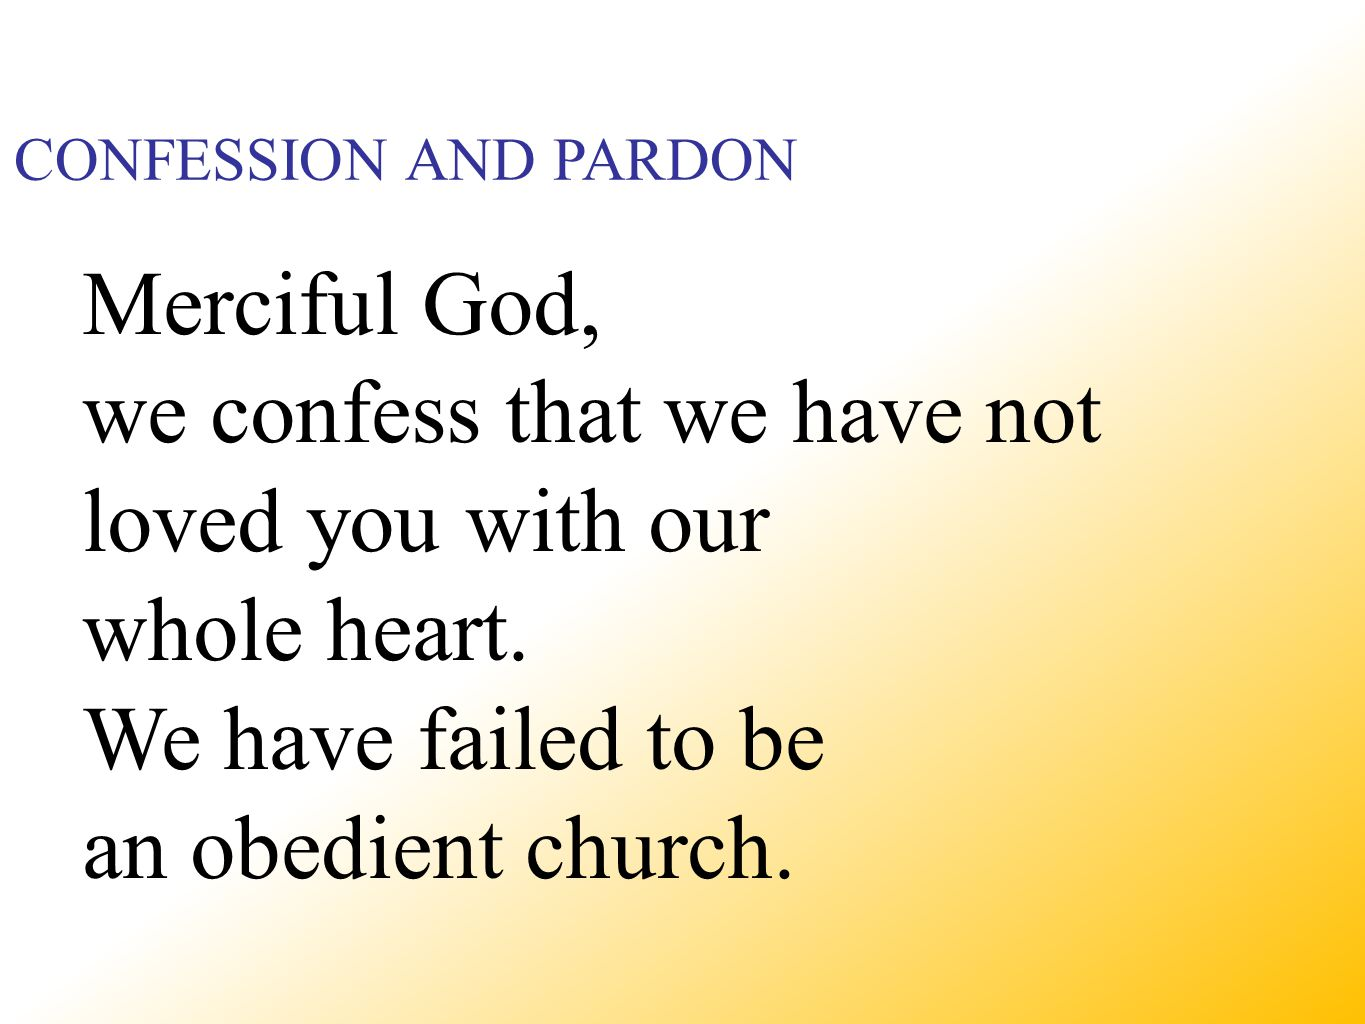 Merciful God, we confess that we have not loved you with our whole heart.